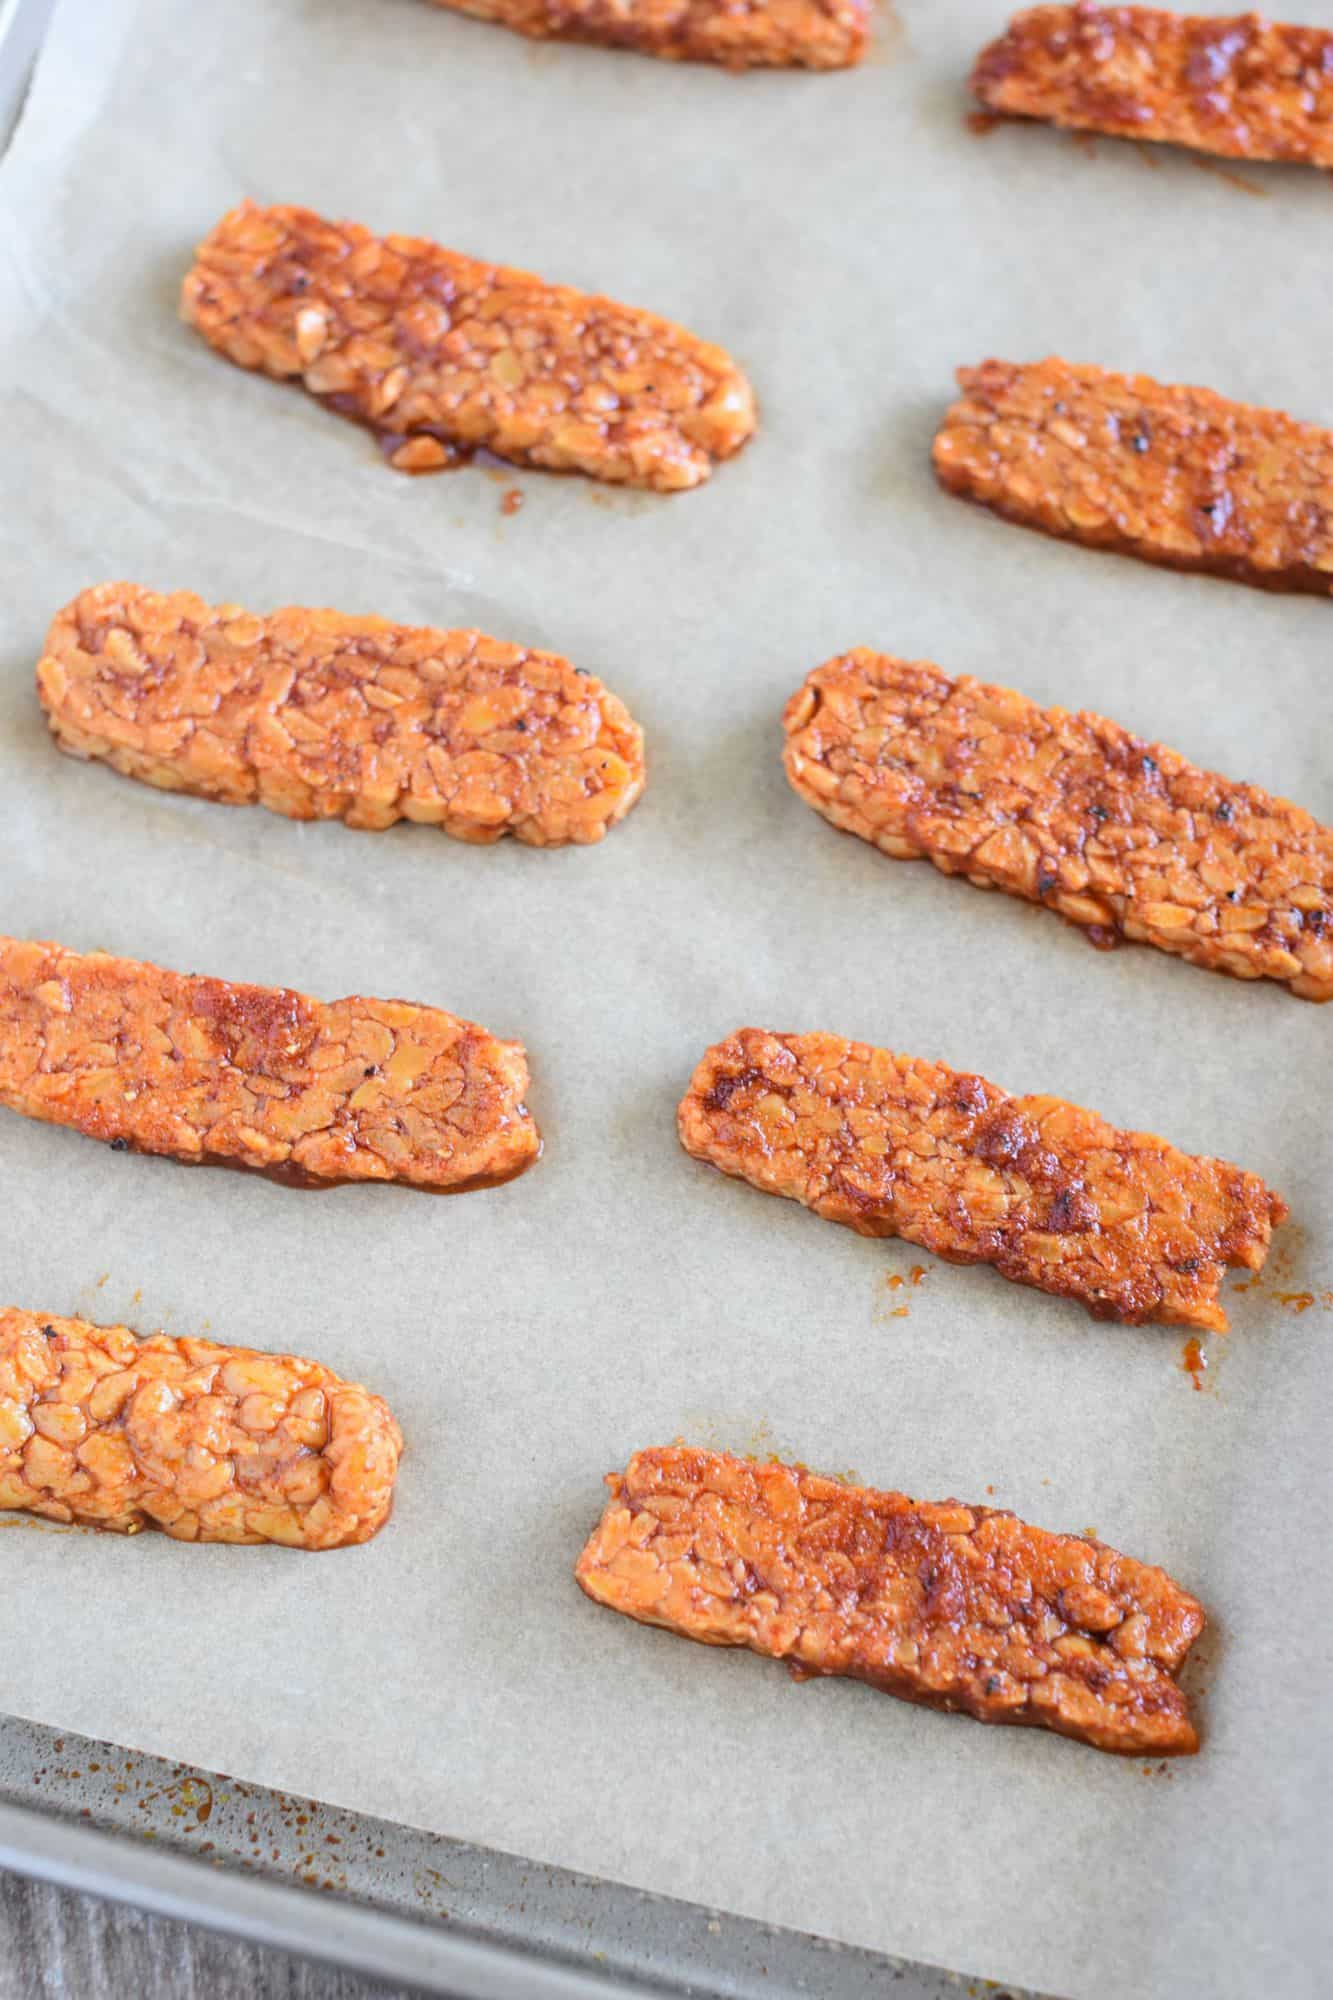 tempeh strips on parchment-lined baking sheet before being cooked